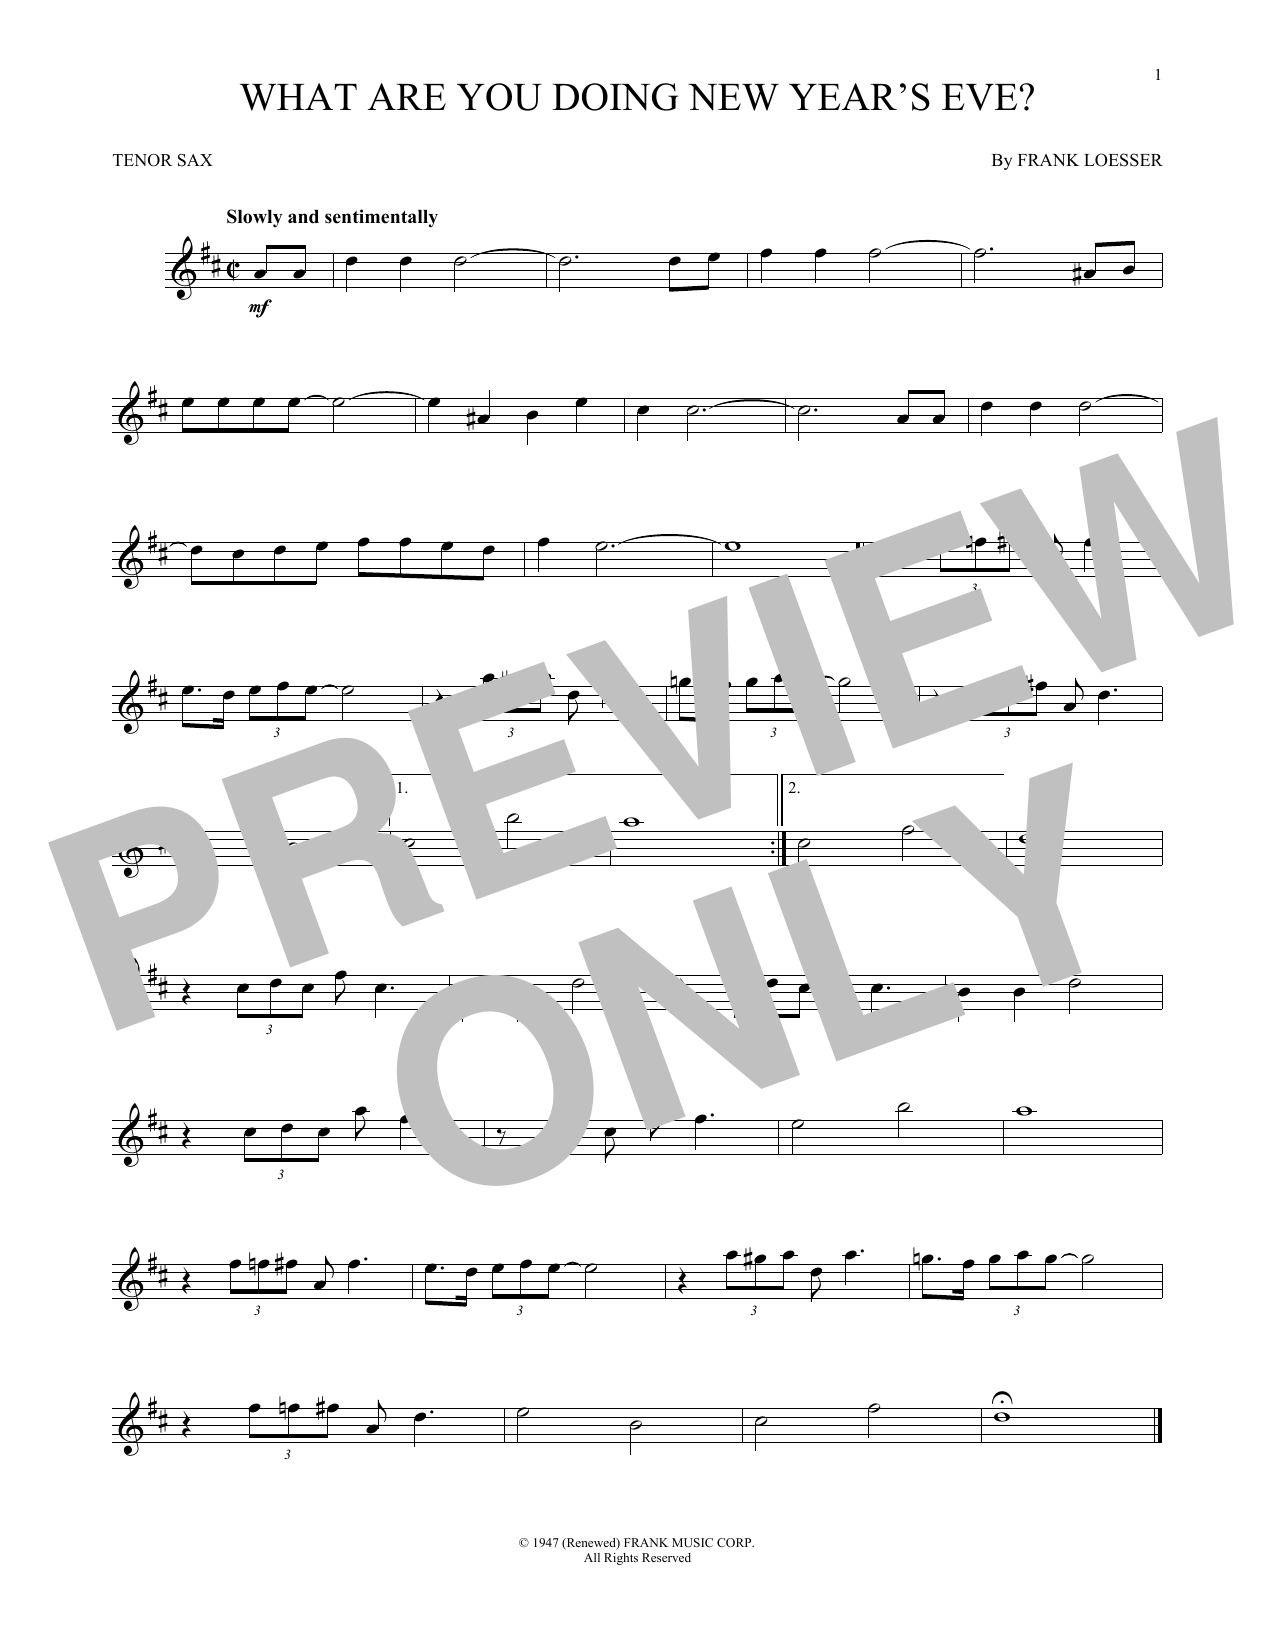 What Are You Doing New Year's Eve? (Tenor Sax Solo)